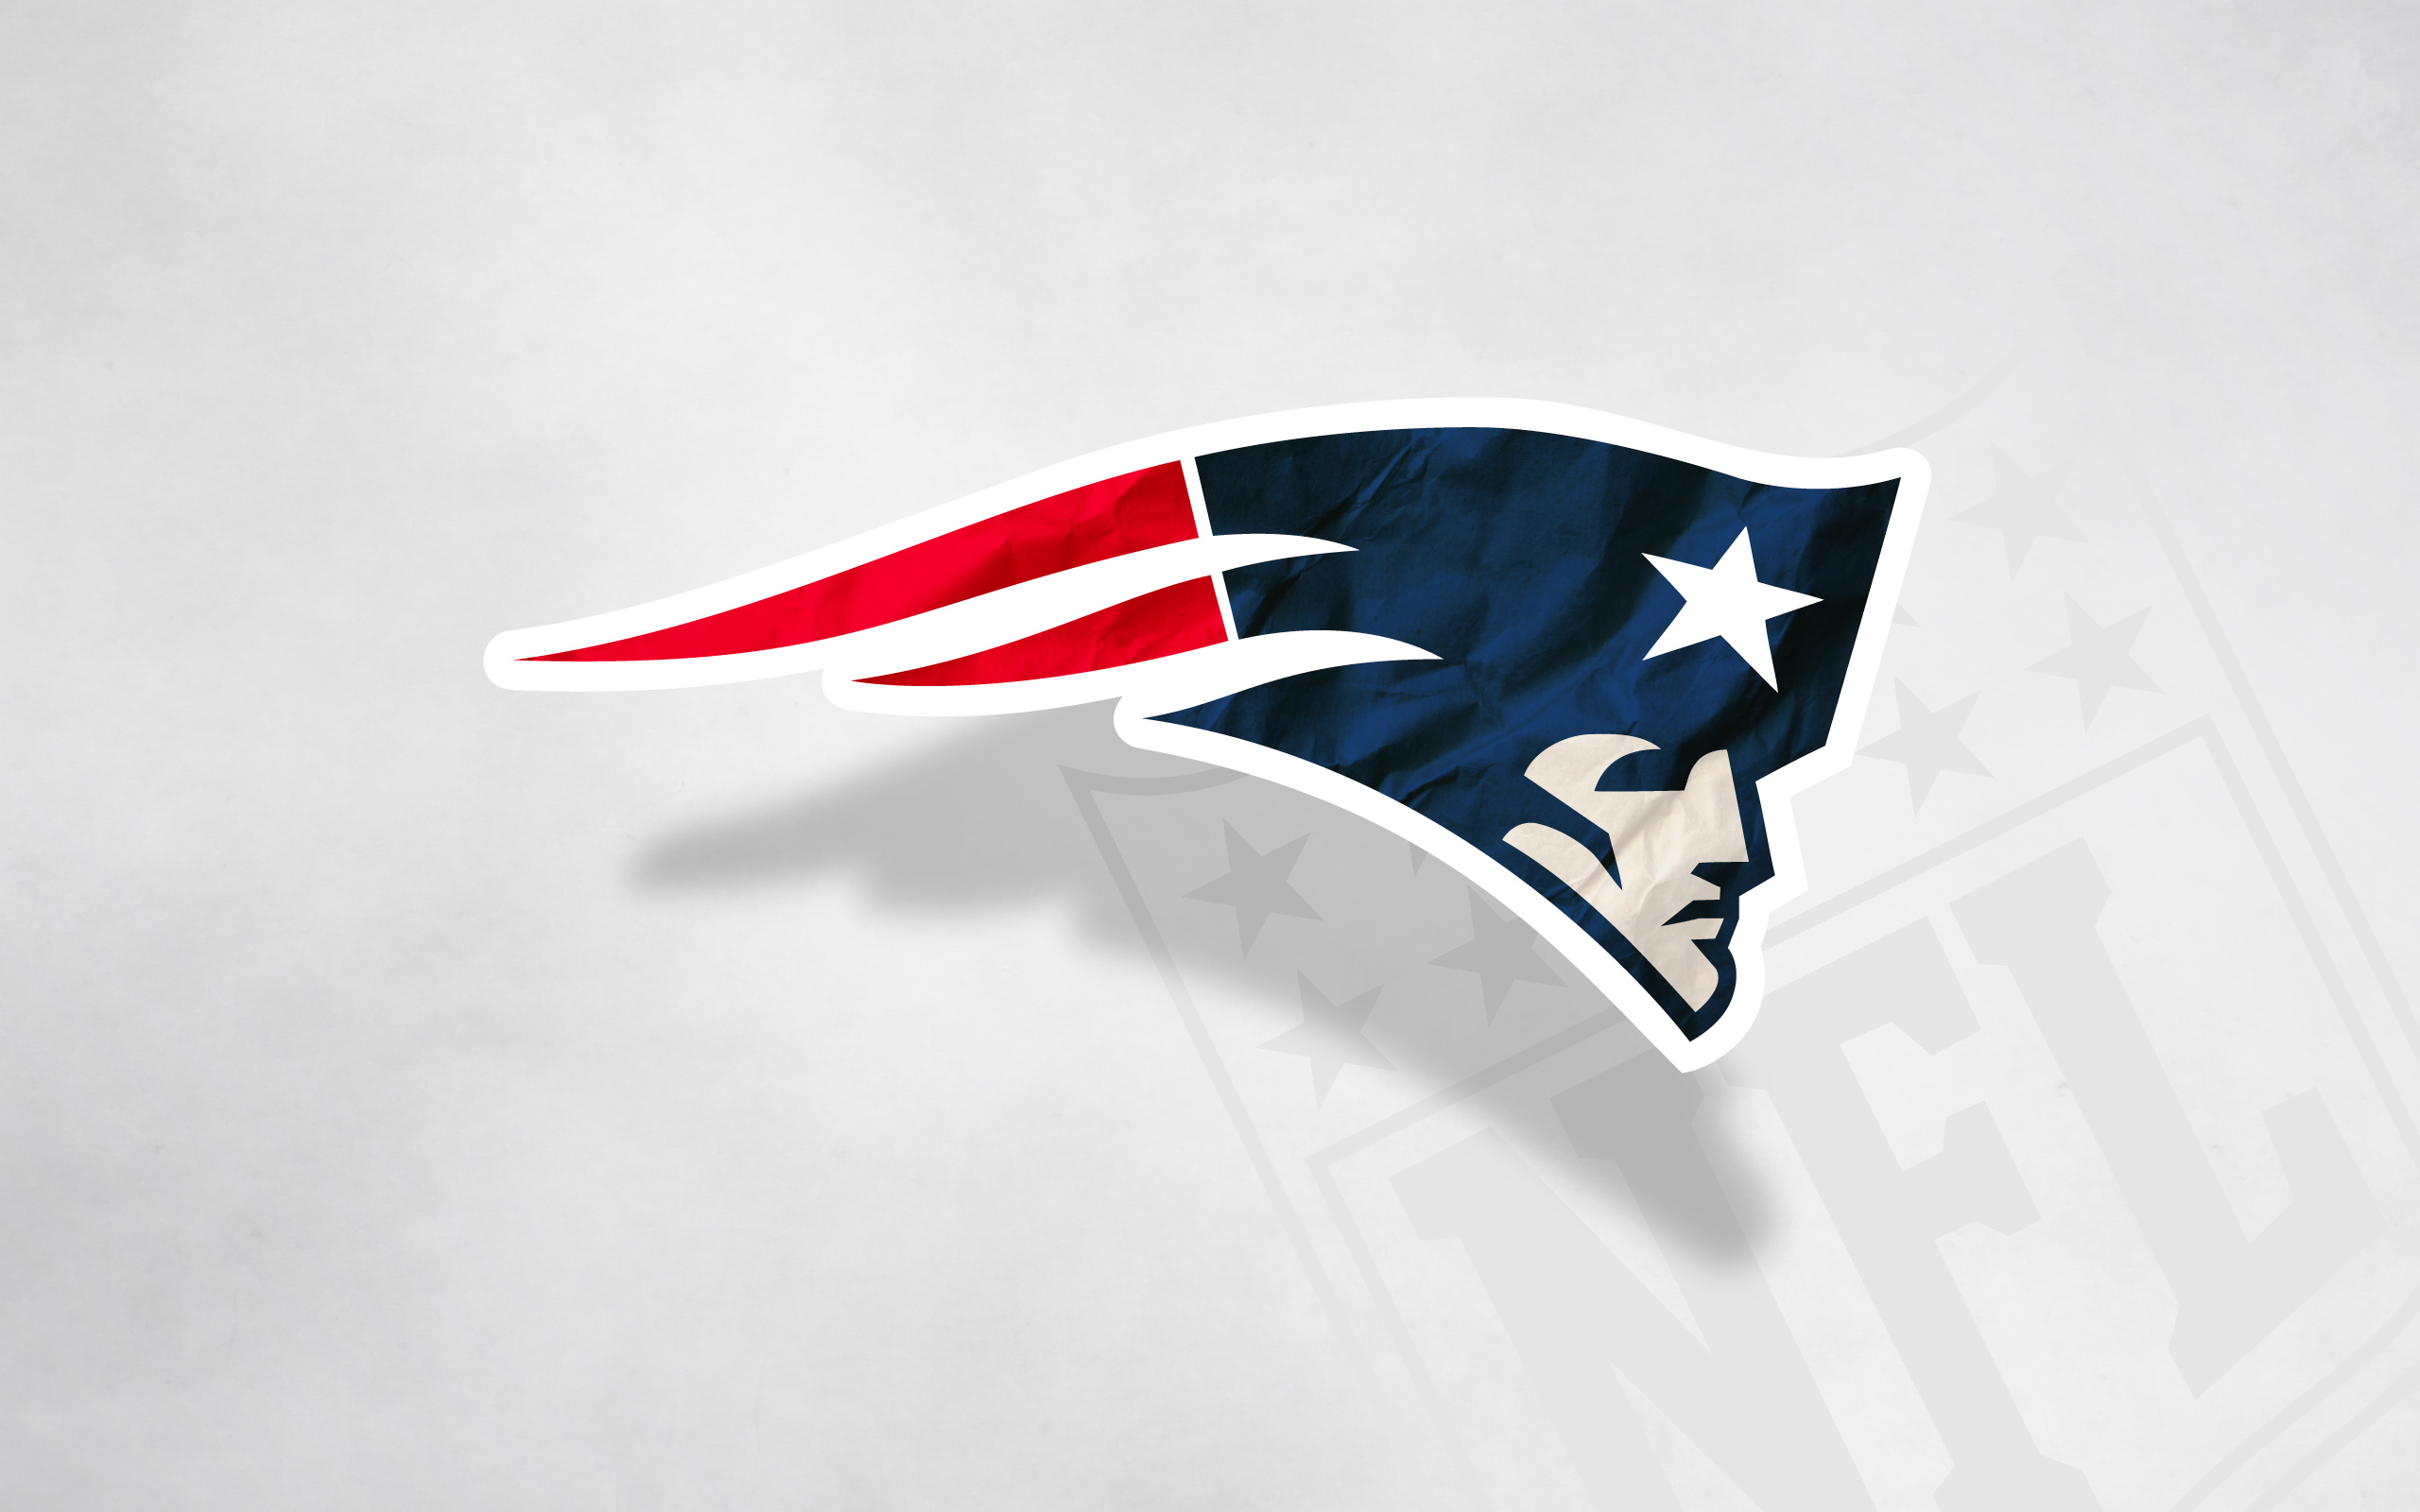 New England Patriots images | New England Patriots wallpapers